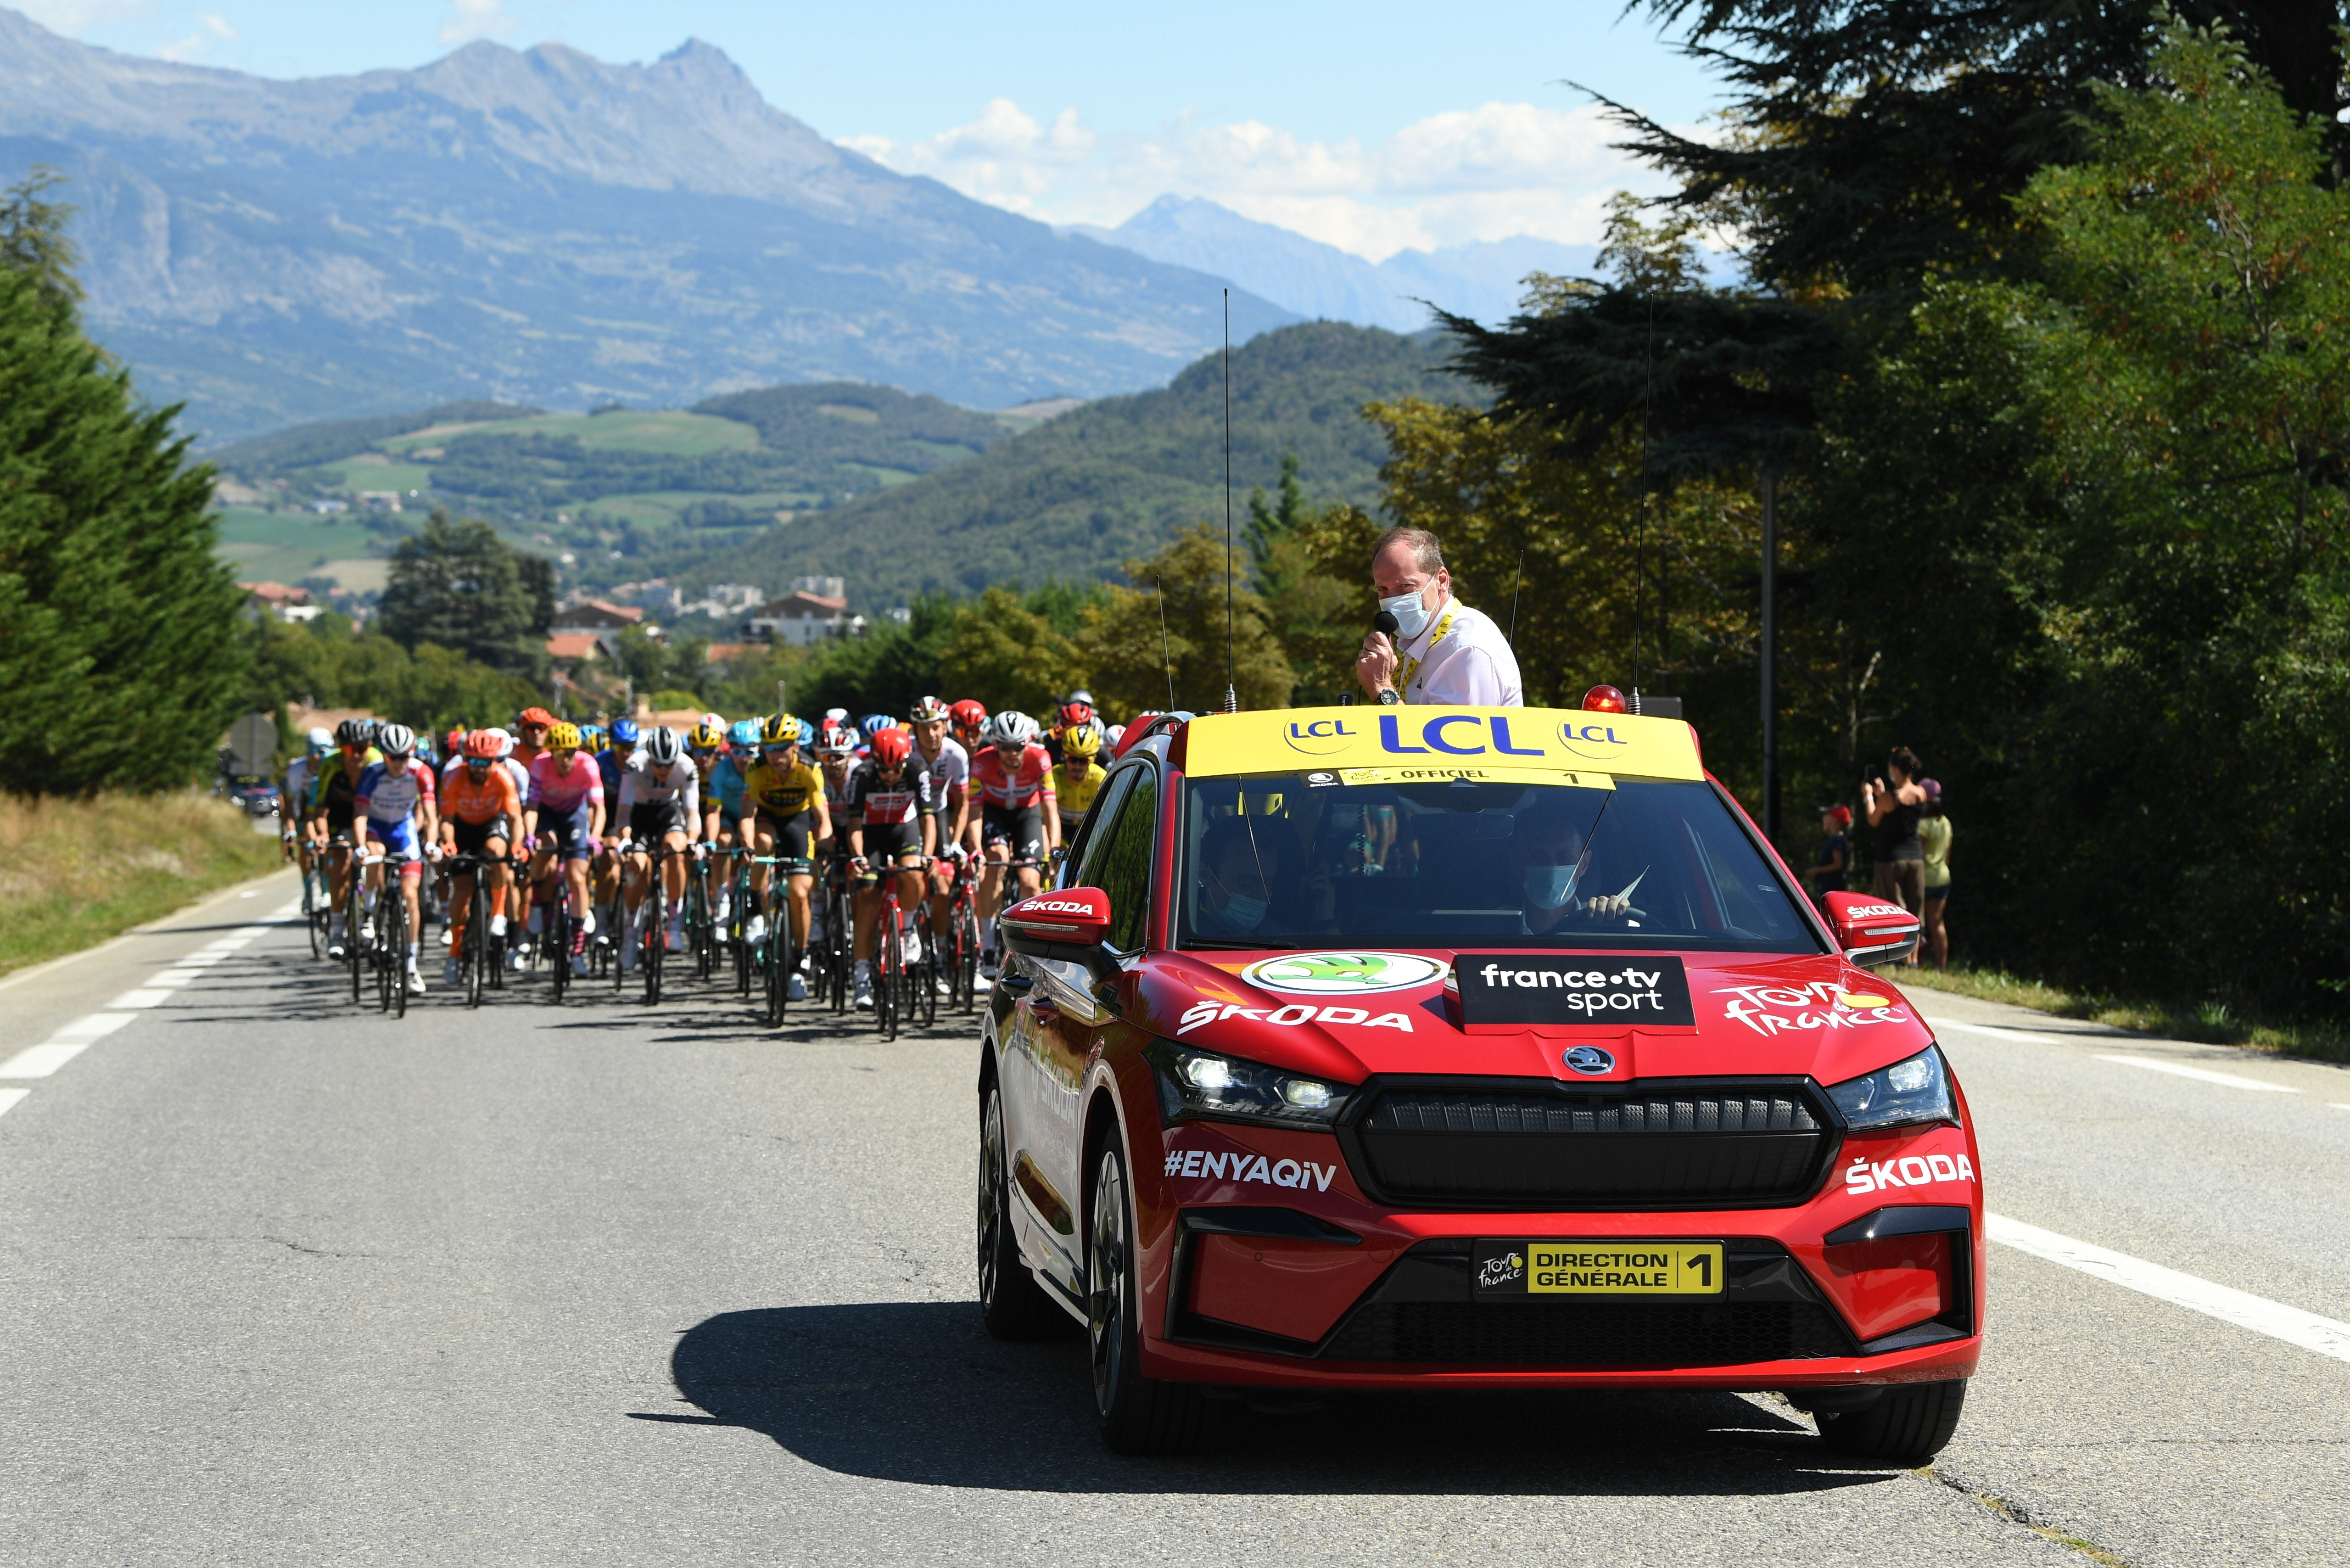 Pictures of the new SKODA ENYAQ iV appearing as the 'Red Car' at the Tour de France - Image 2